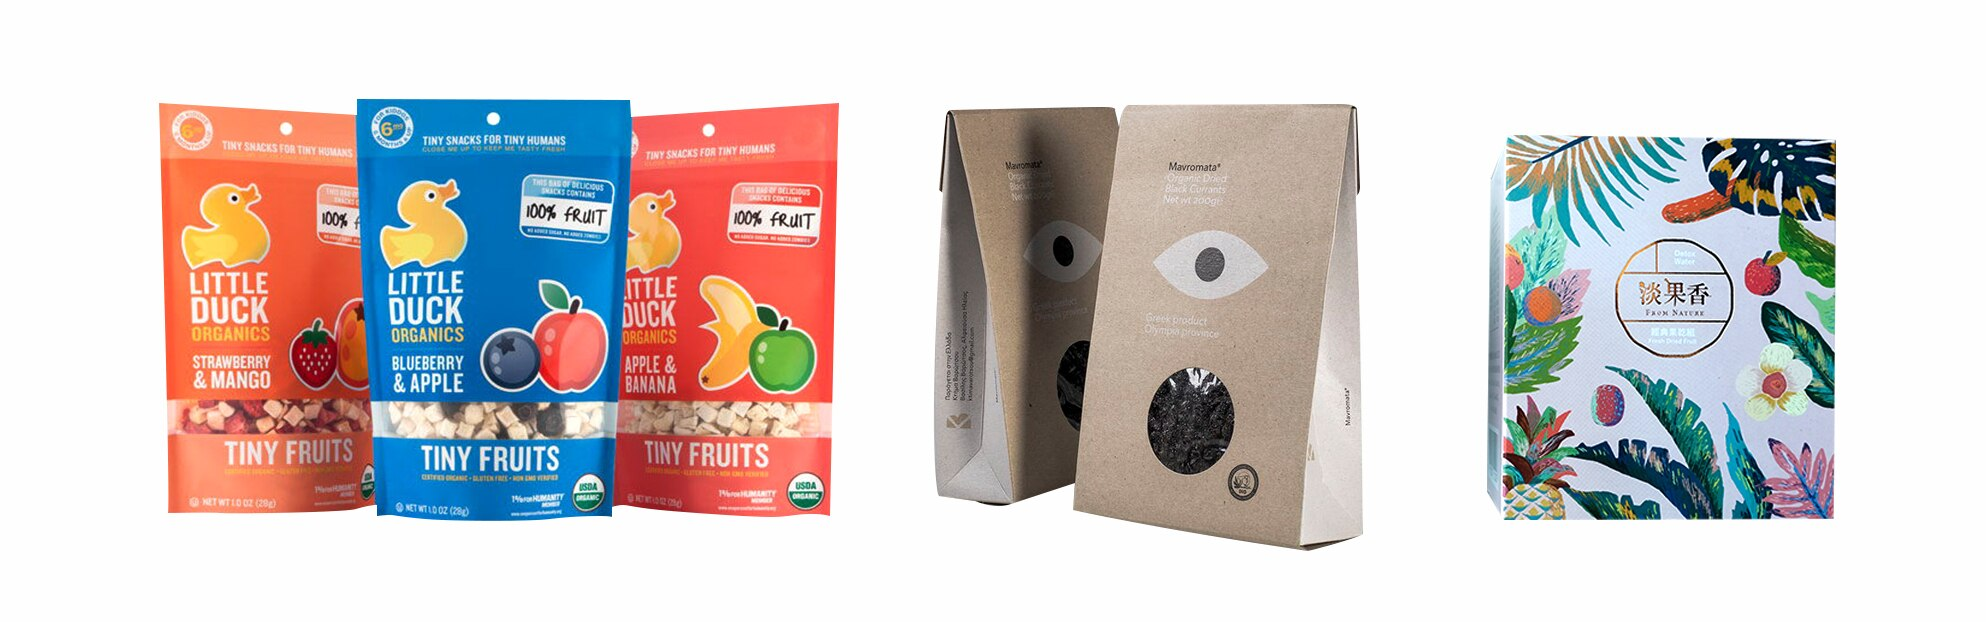 organic-dry-fruit-packaging-stand-up-bags-and-boxes-custom-printed.jpg